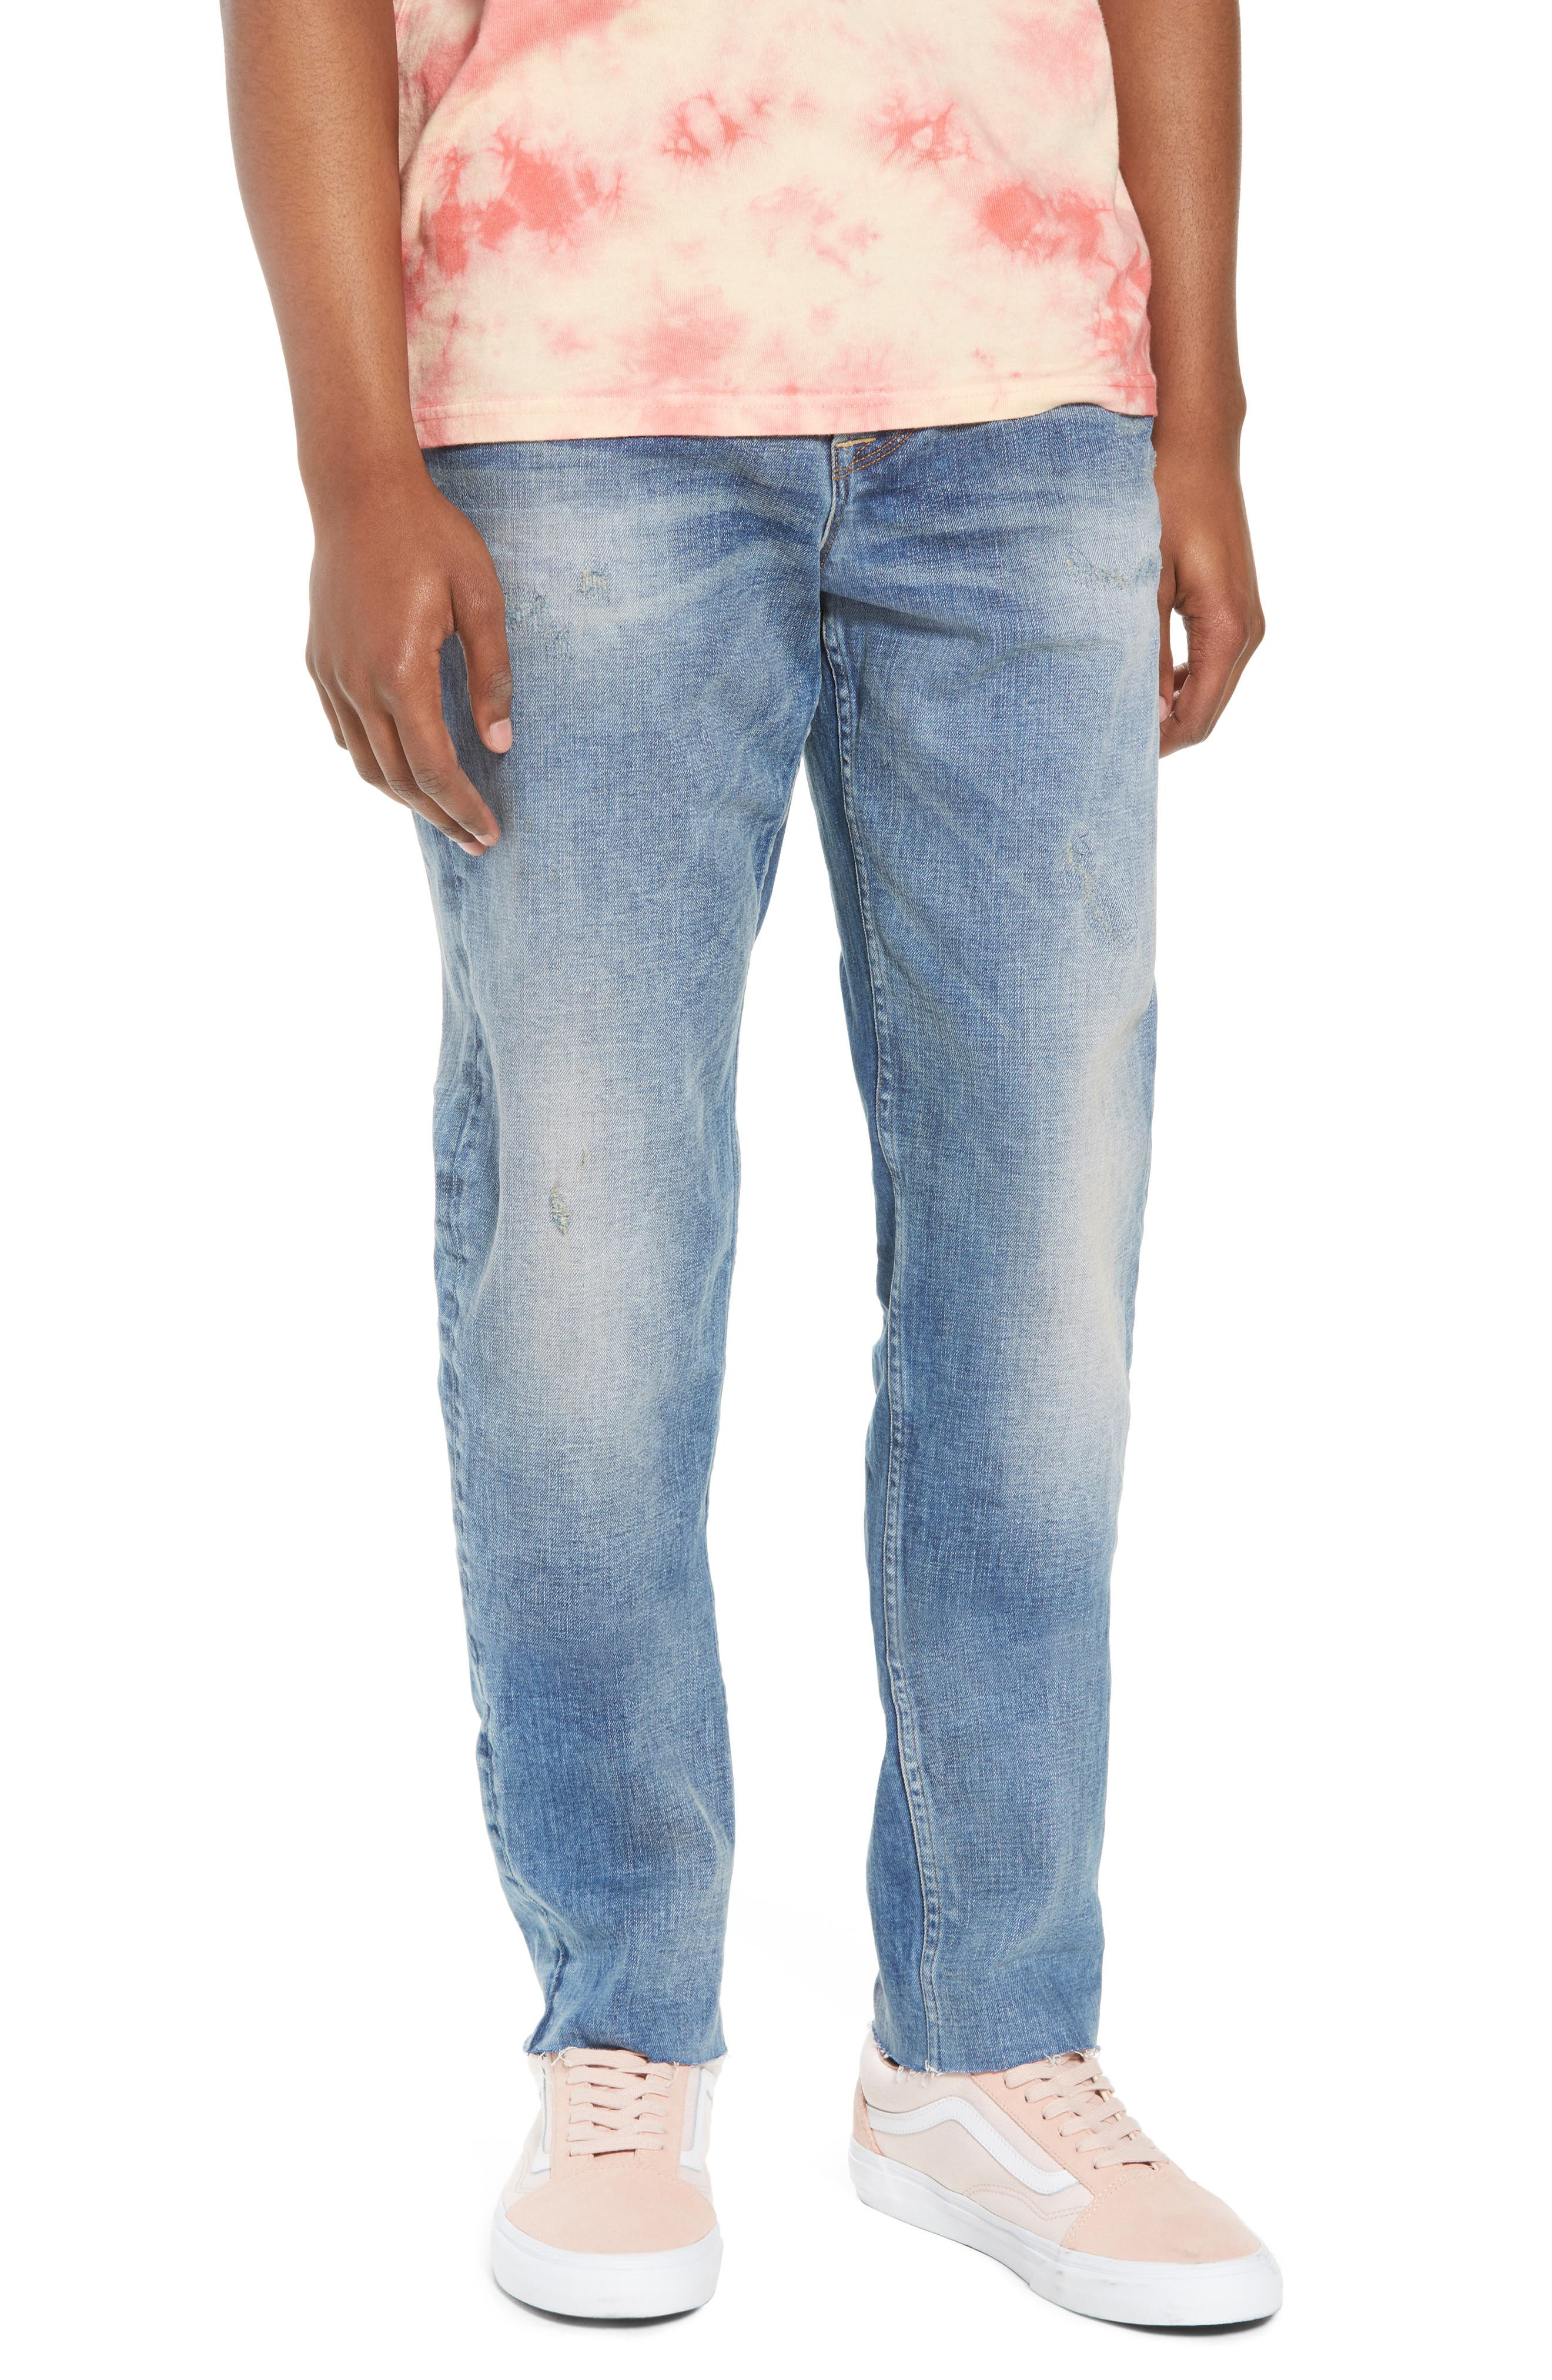 Sartor Slouchy Skinny Fit Jeans,                         Main,                         color, 429